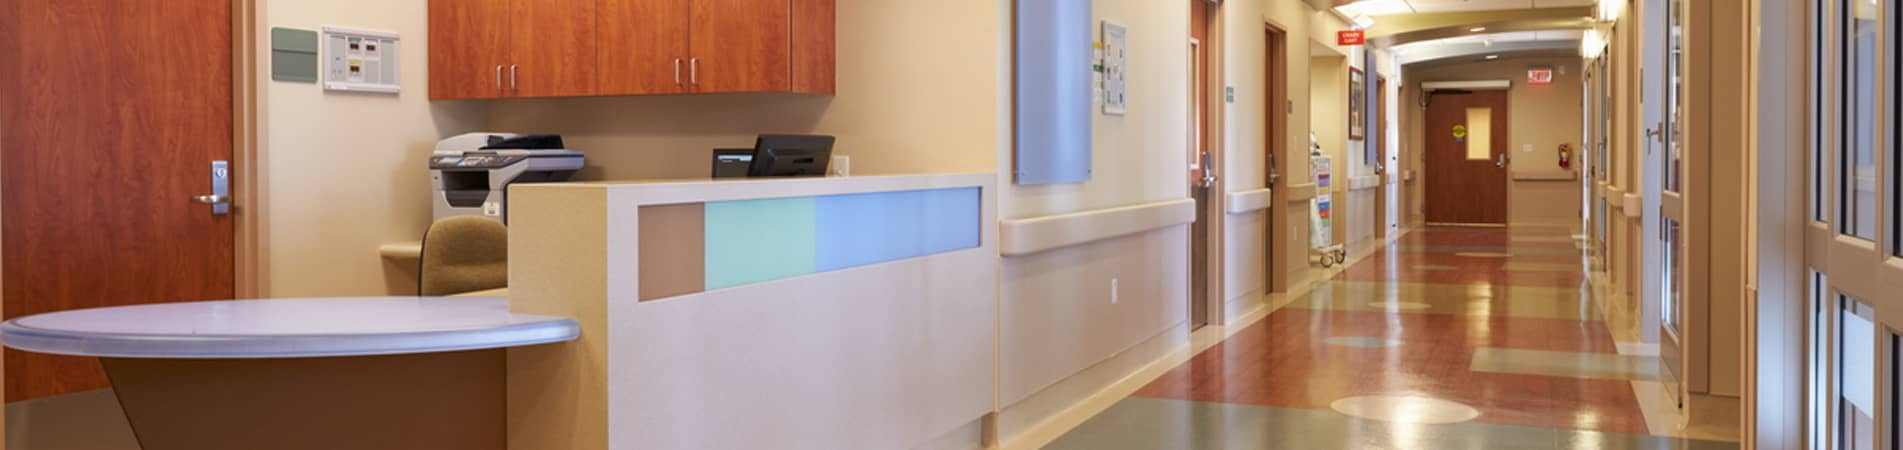 Velt's Personalized Car Care, LLC Medical Office Cleaning services